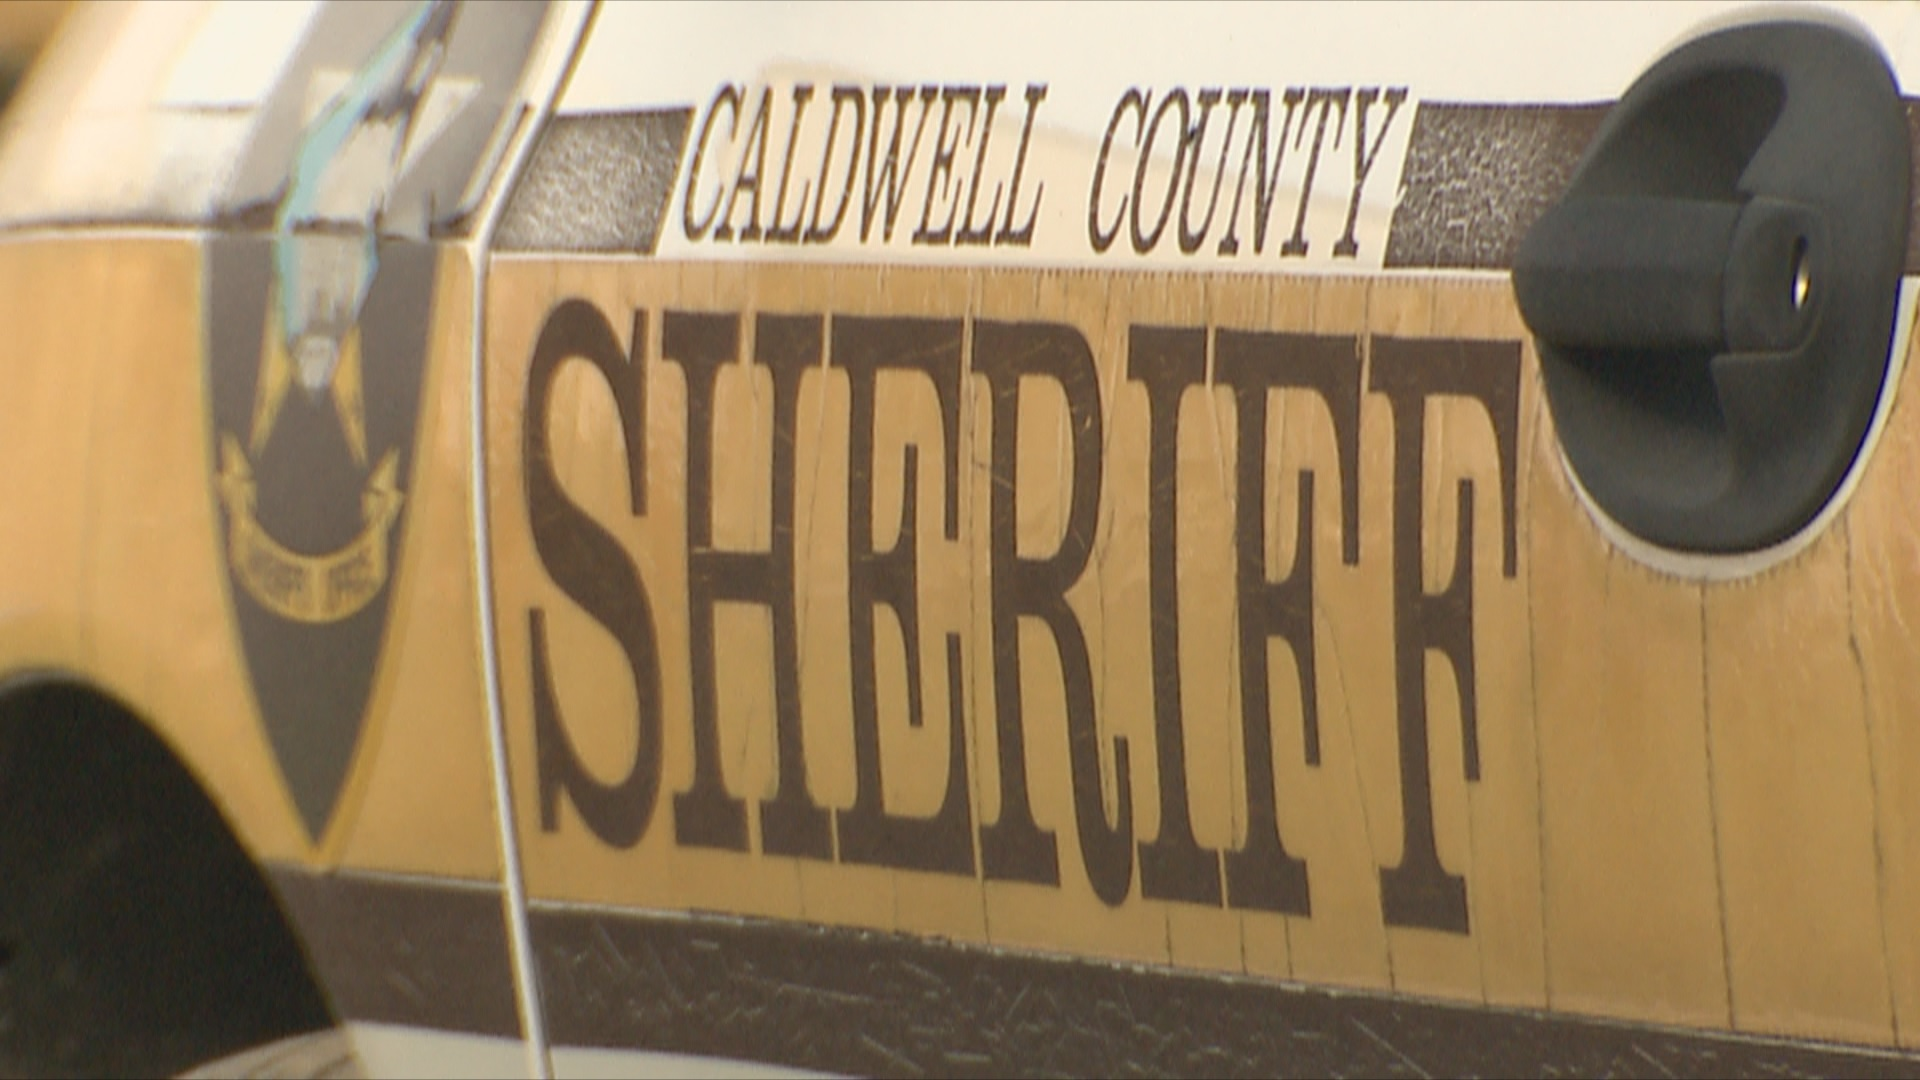 Caldwell County Sheriff's Office_267883